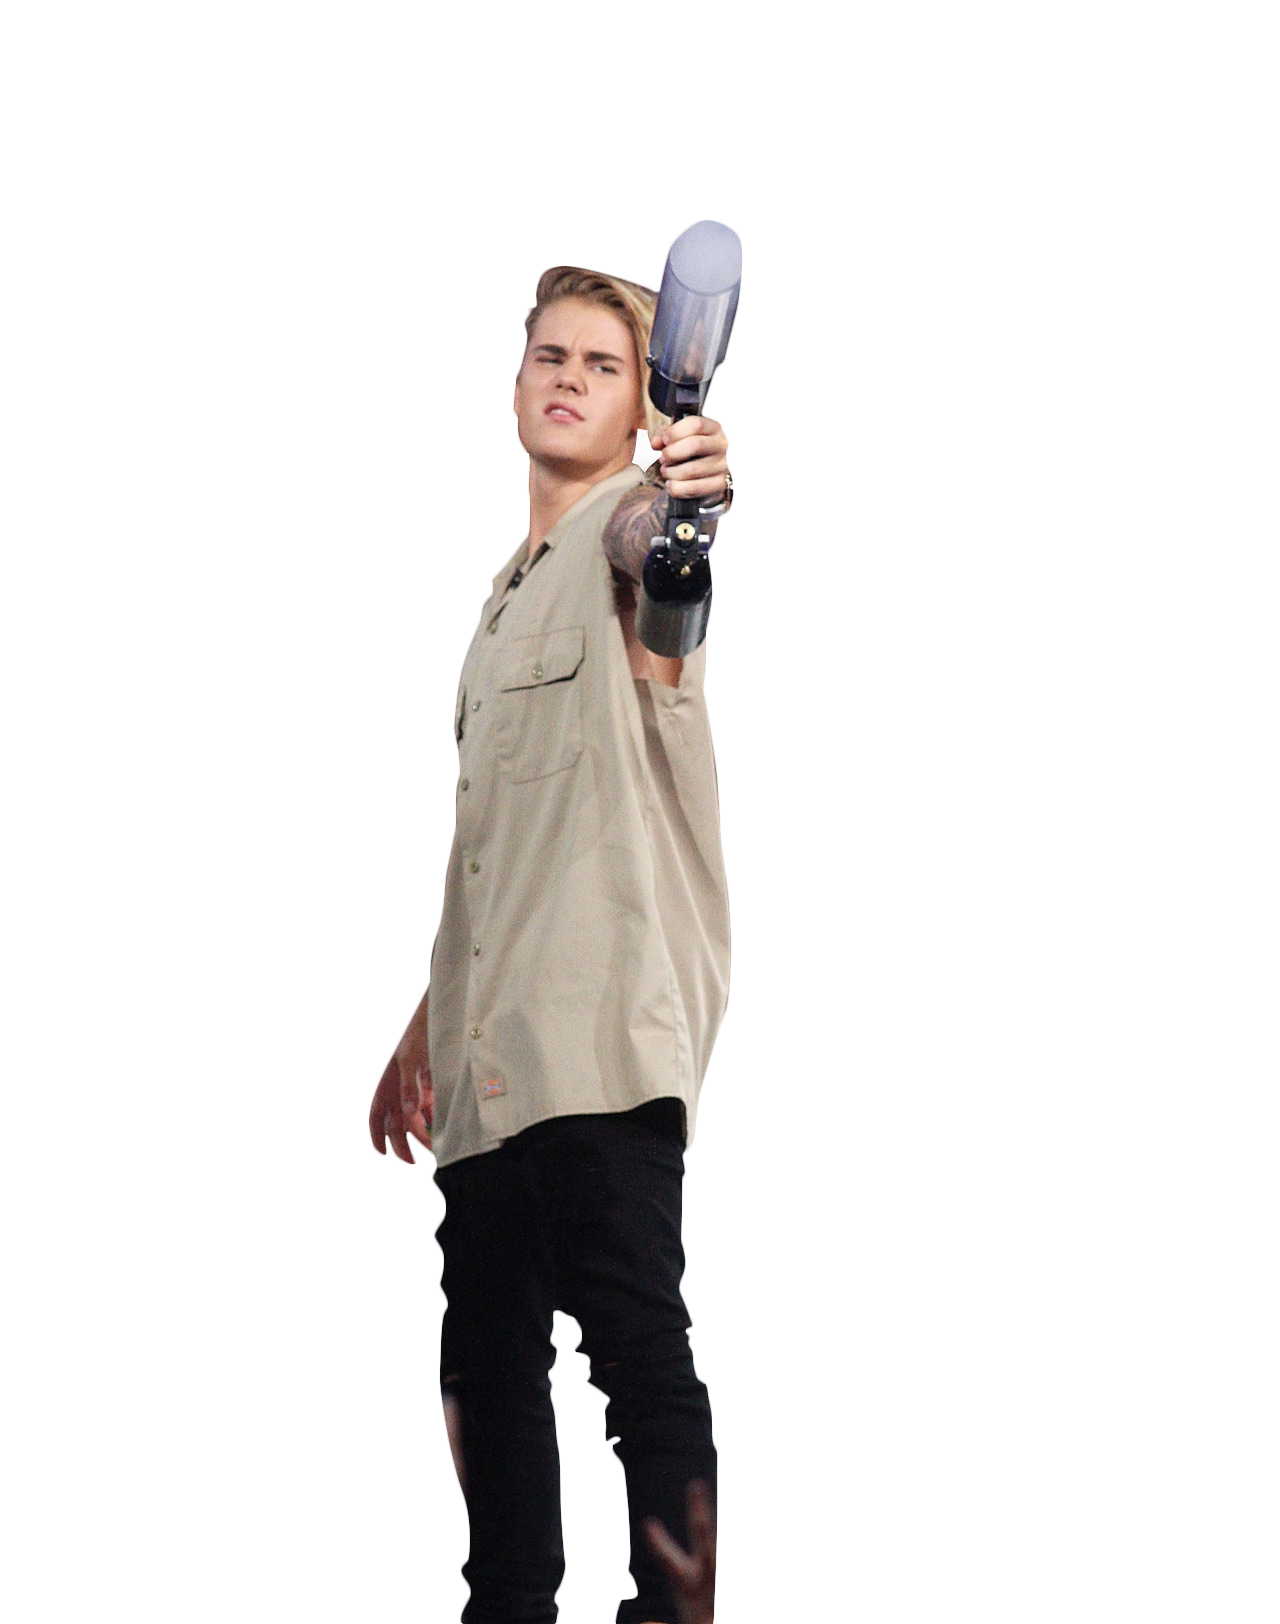 Justin Bieber Holding Gas Canone PNG Image